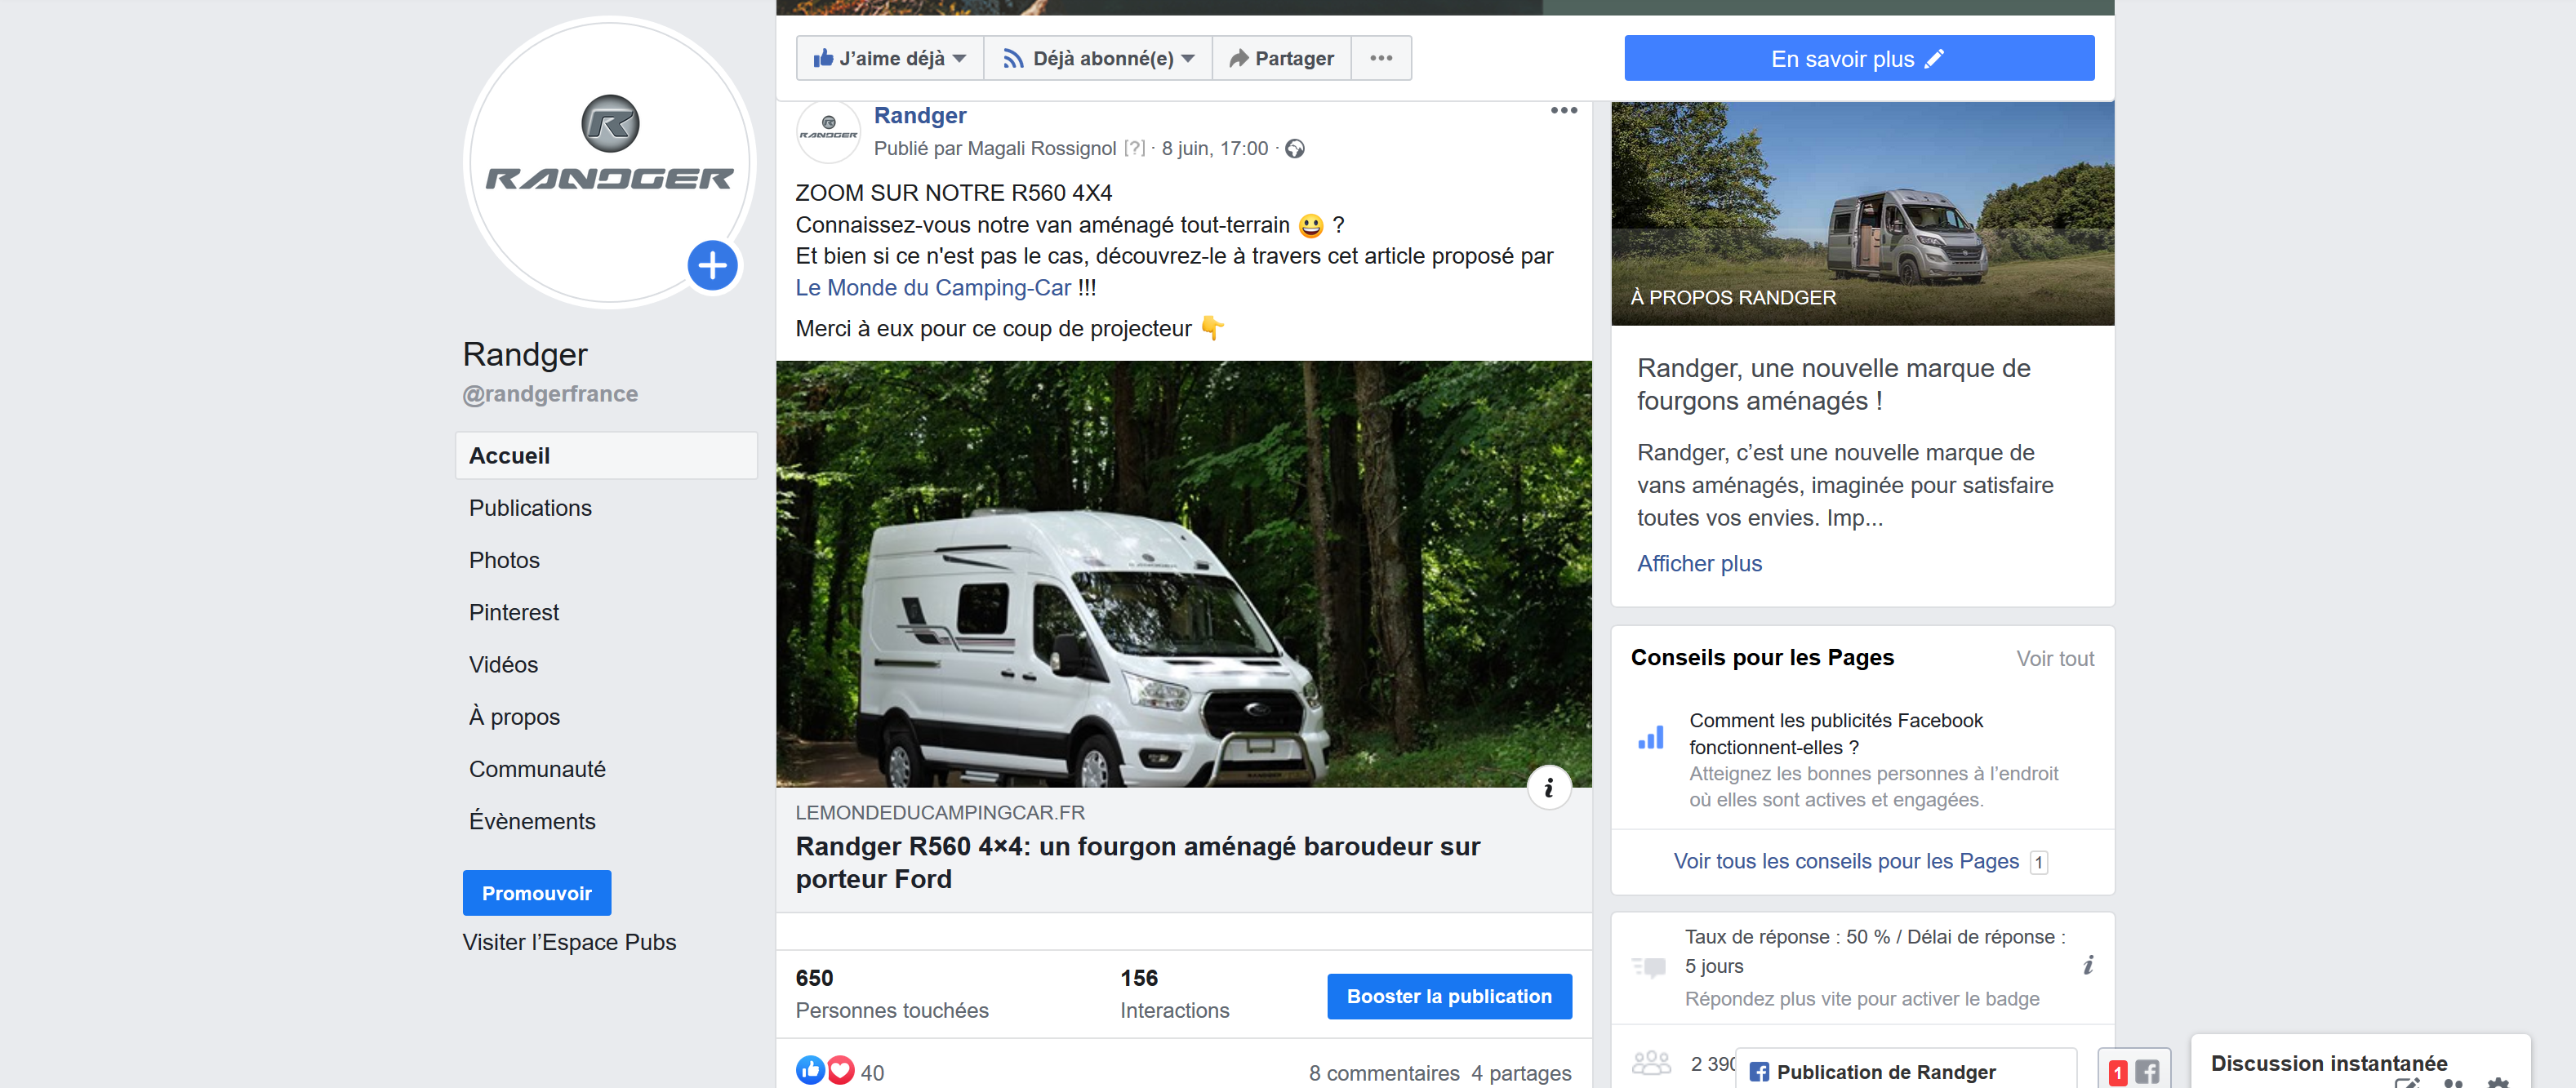 animation-facebook-constructeur-de-vans-amenages-randger-dordogne